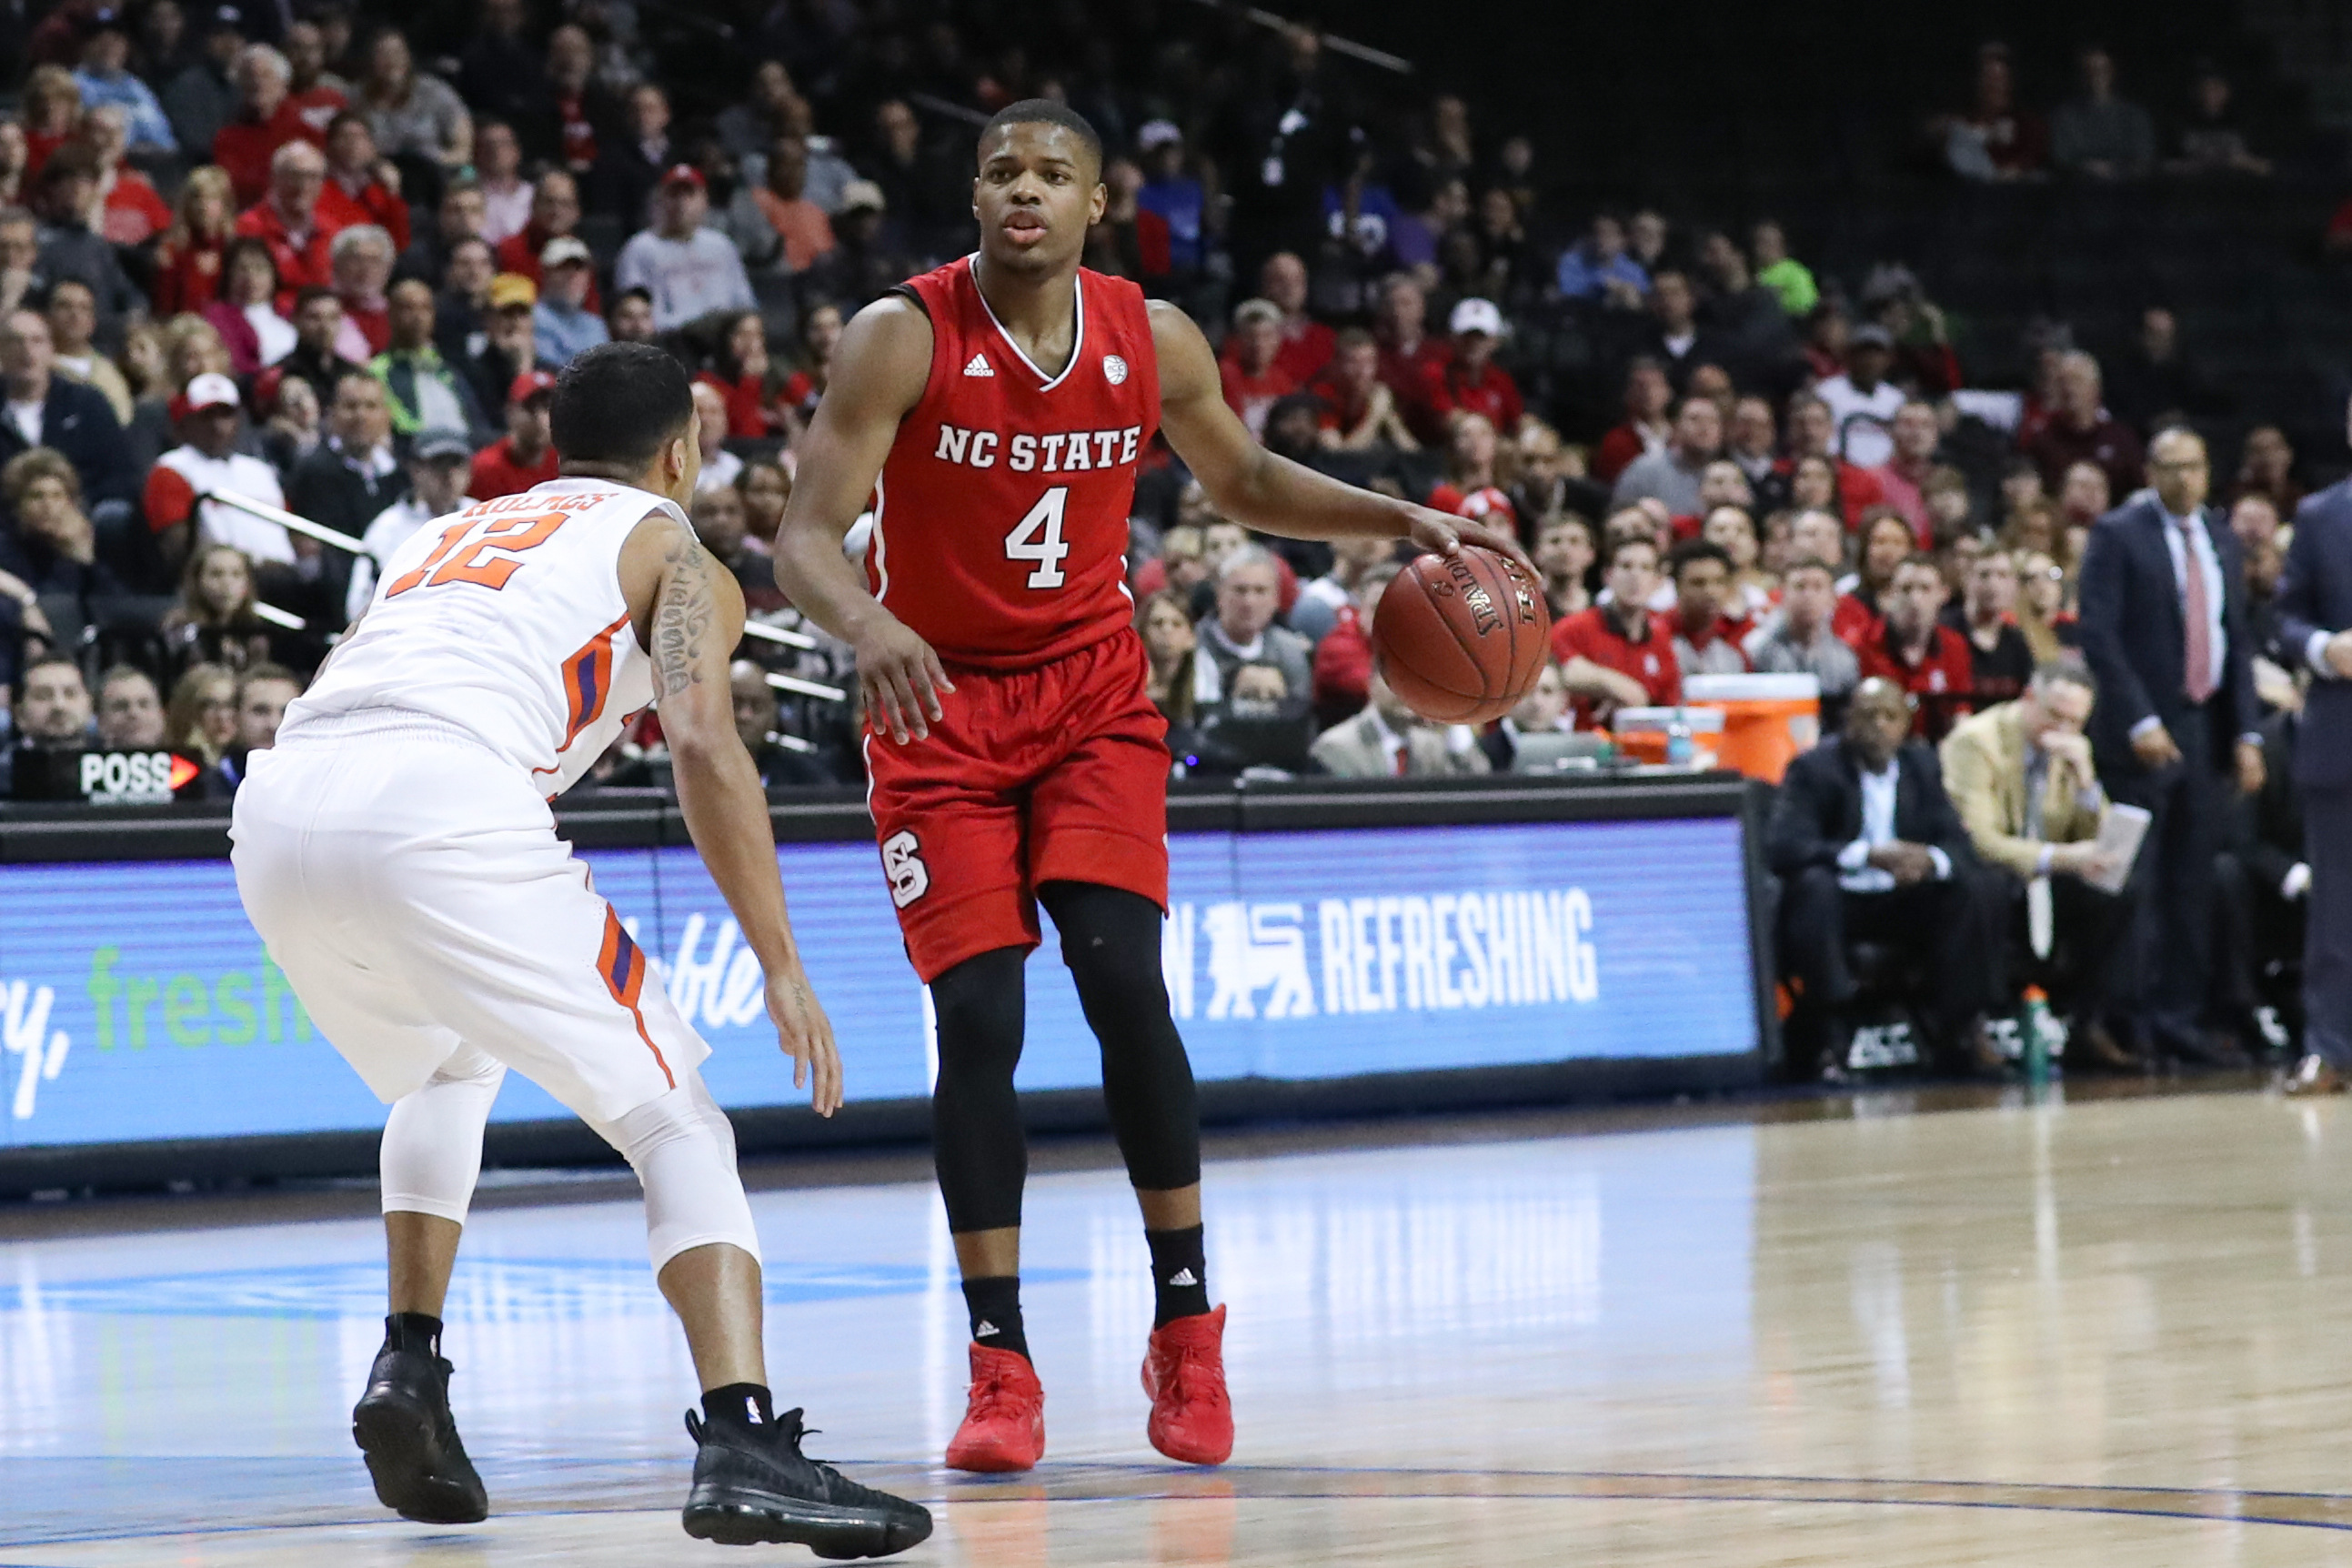 9924330-ncaa-basketball-acc-conference-tournament-clemson-vs-nc-state-1